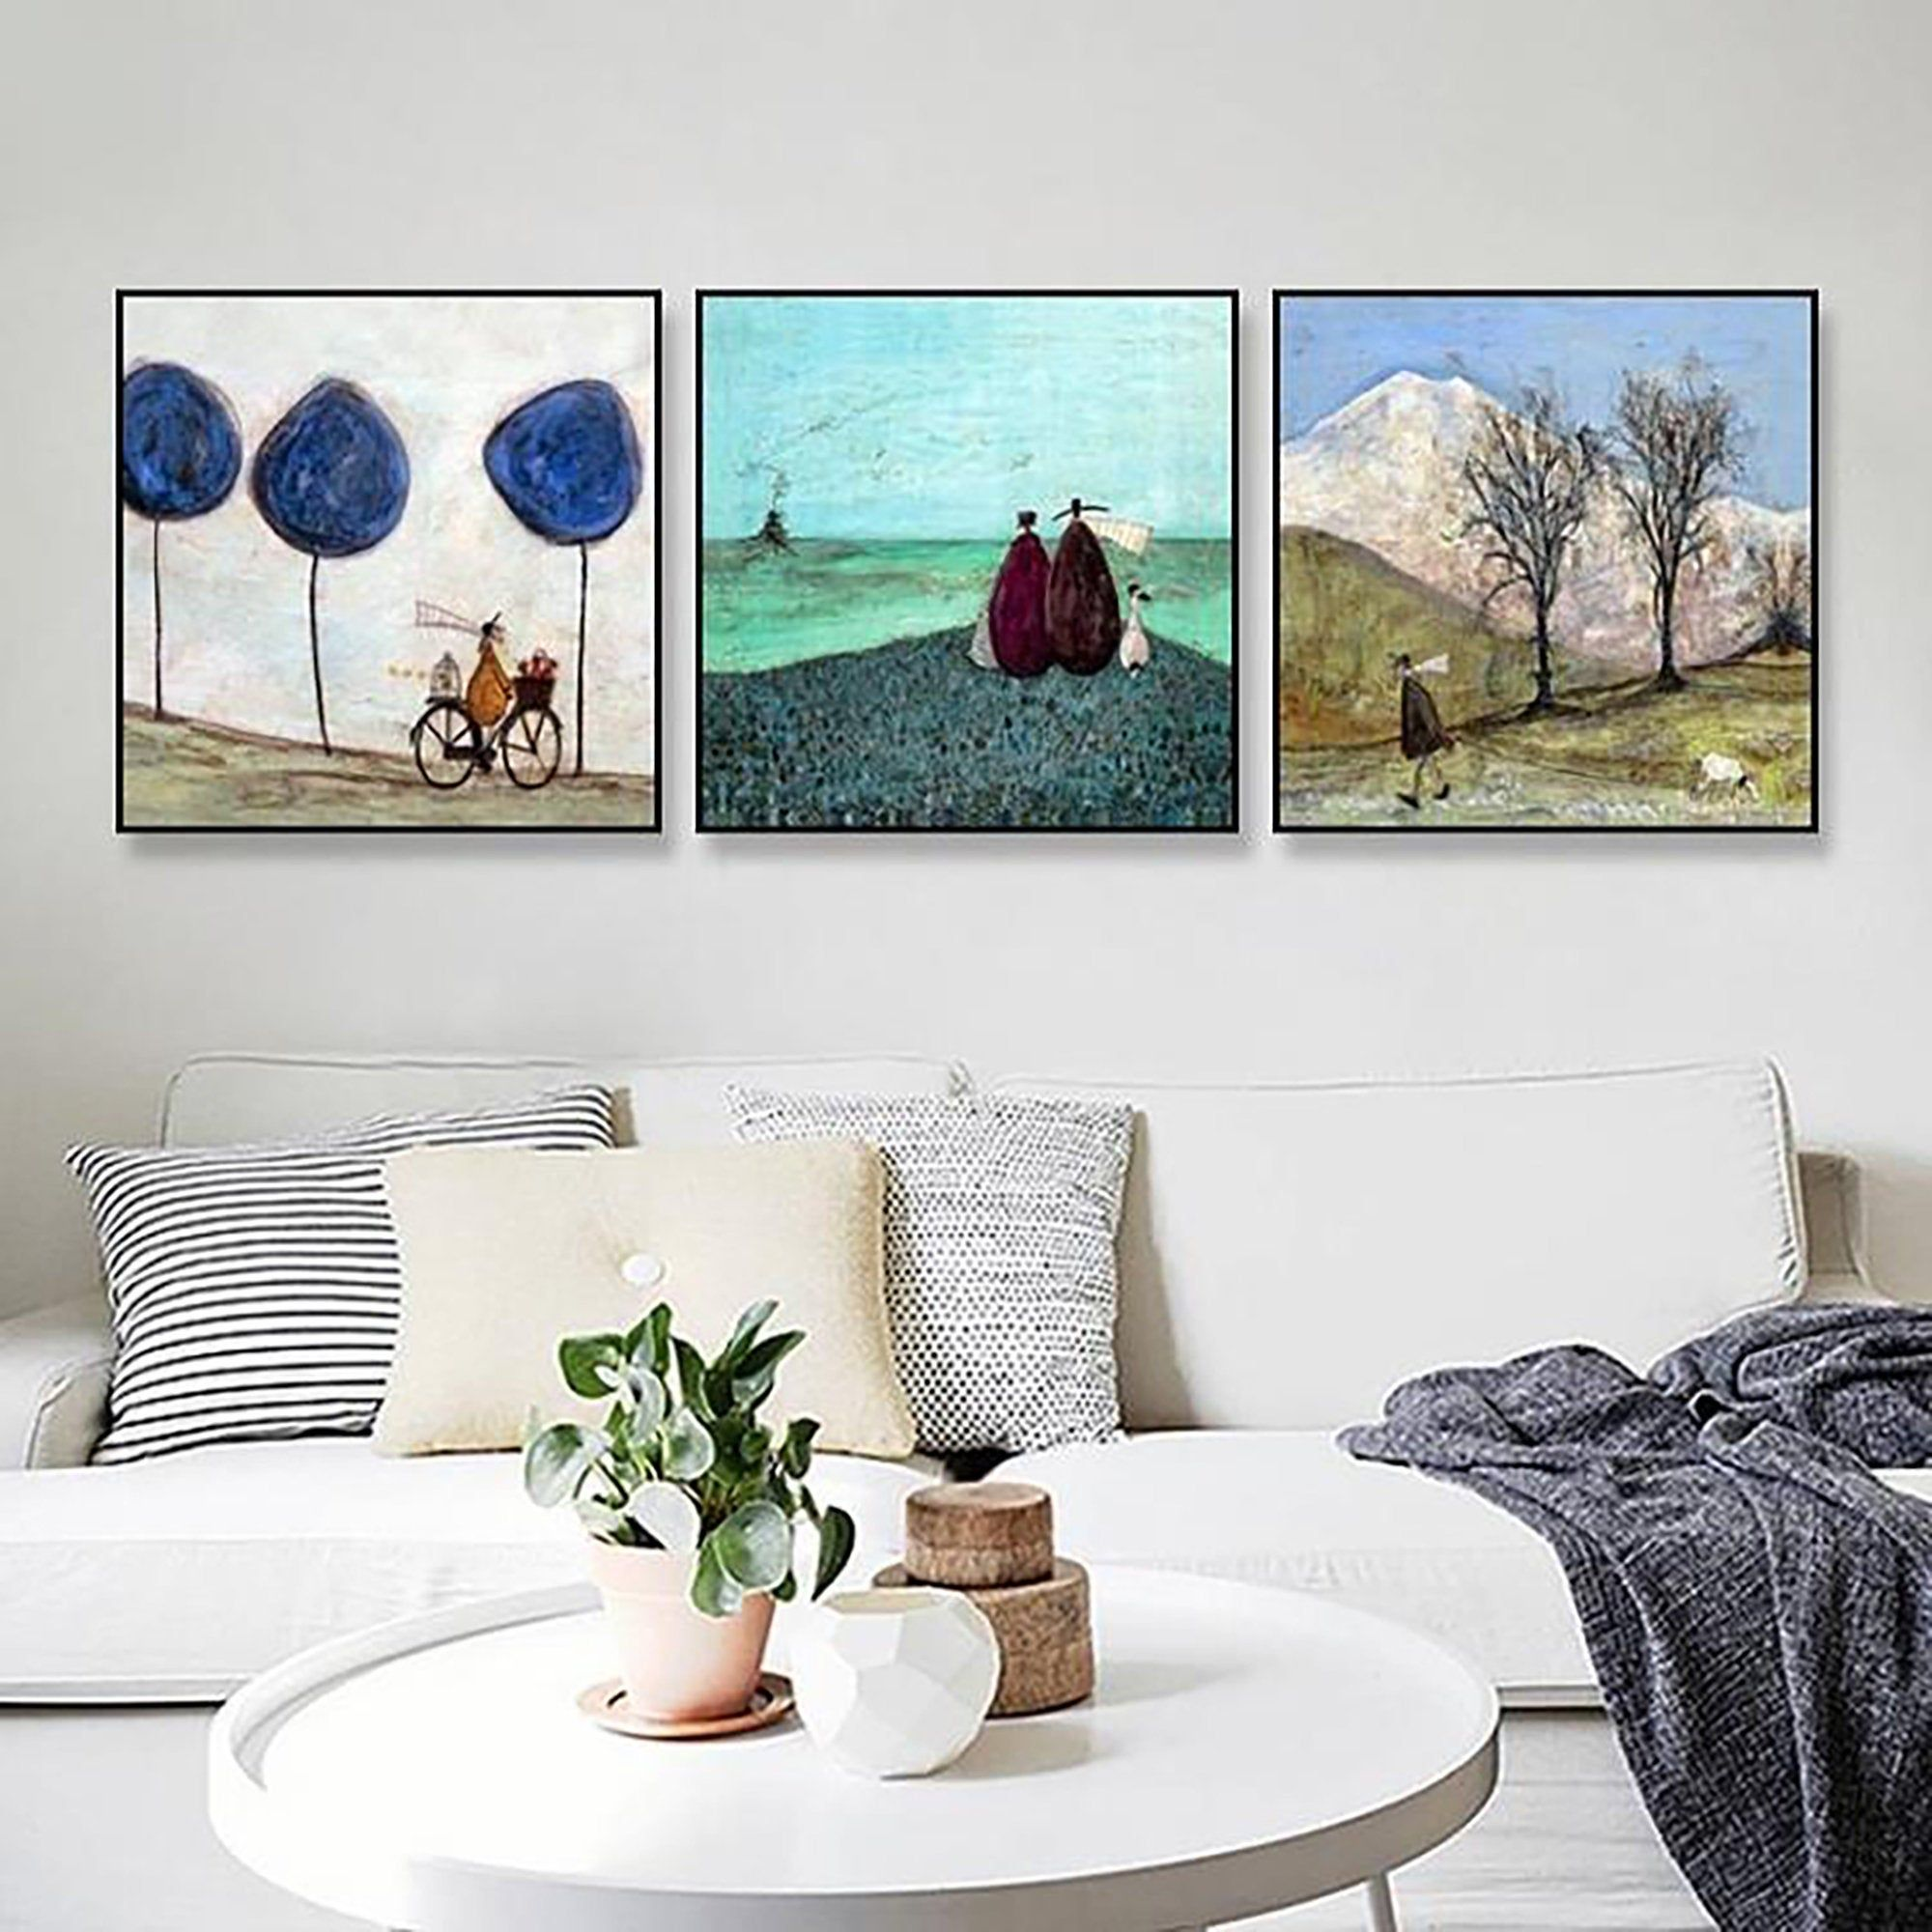 Happy Family Abstract Decorative Oil Painting Canvas Spray Painting Living Room Bedroom Study Ho Abstract Canvas Painting Acrylic Wall Decor Wall Decor Bedroom #oil #painting #living #room